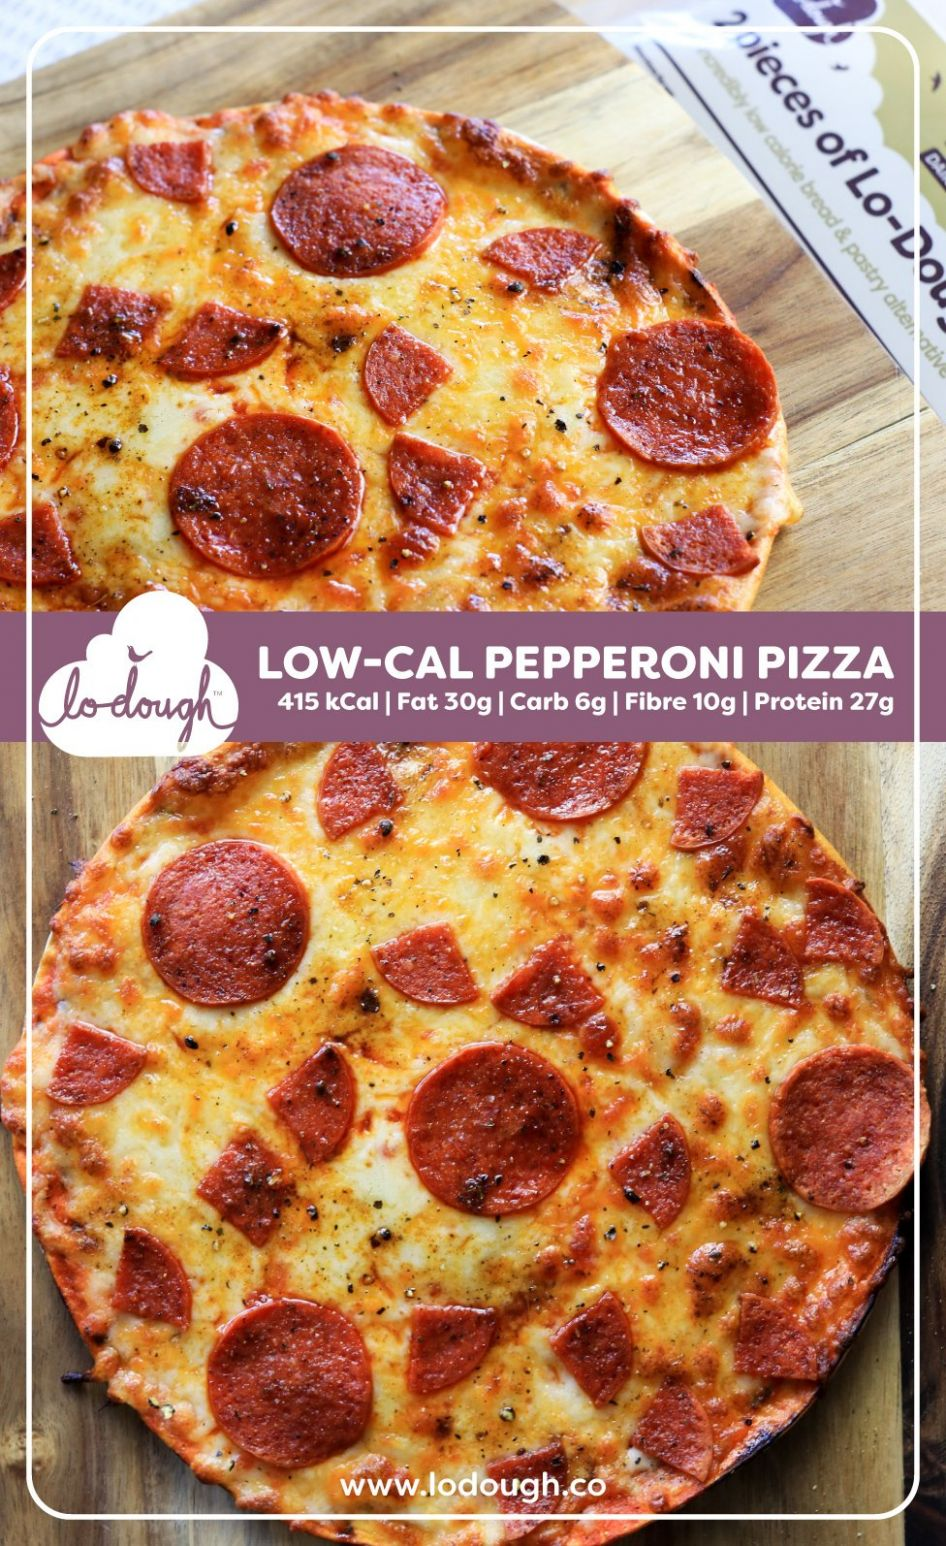 Lo-Dough Pepperoni Pizza - Pizza Recipes Low Calorie